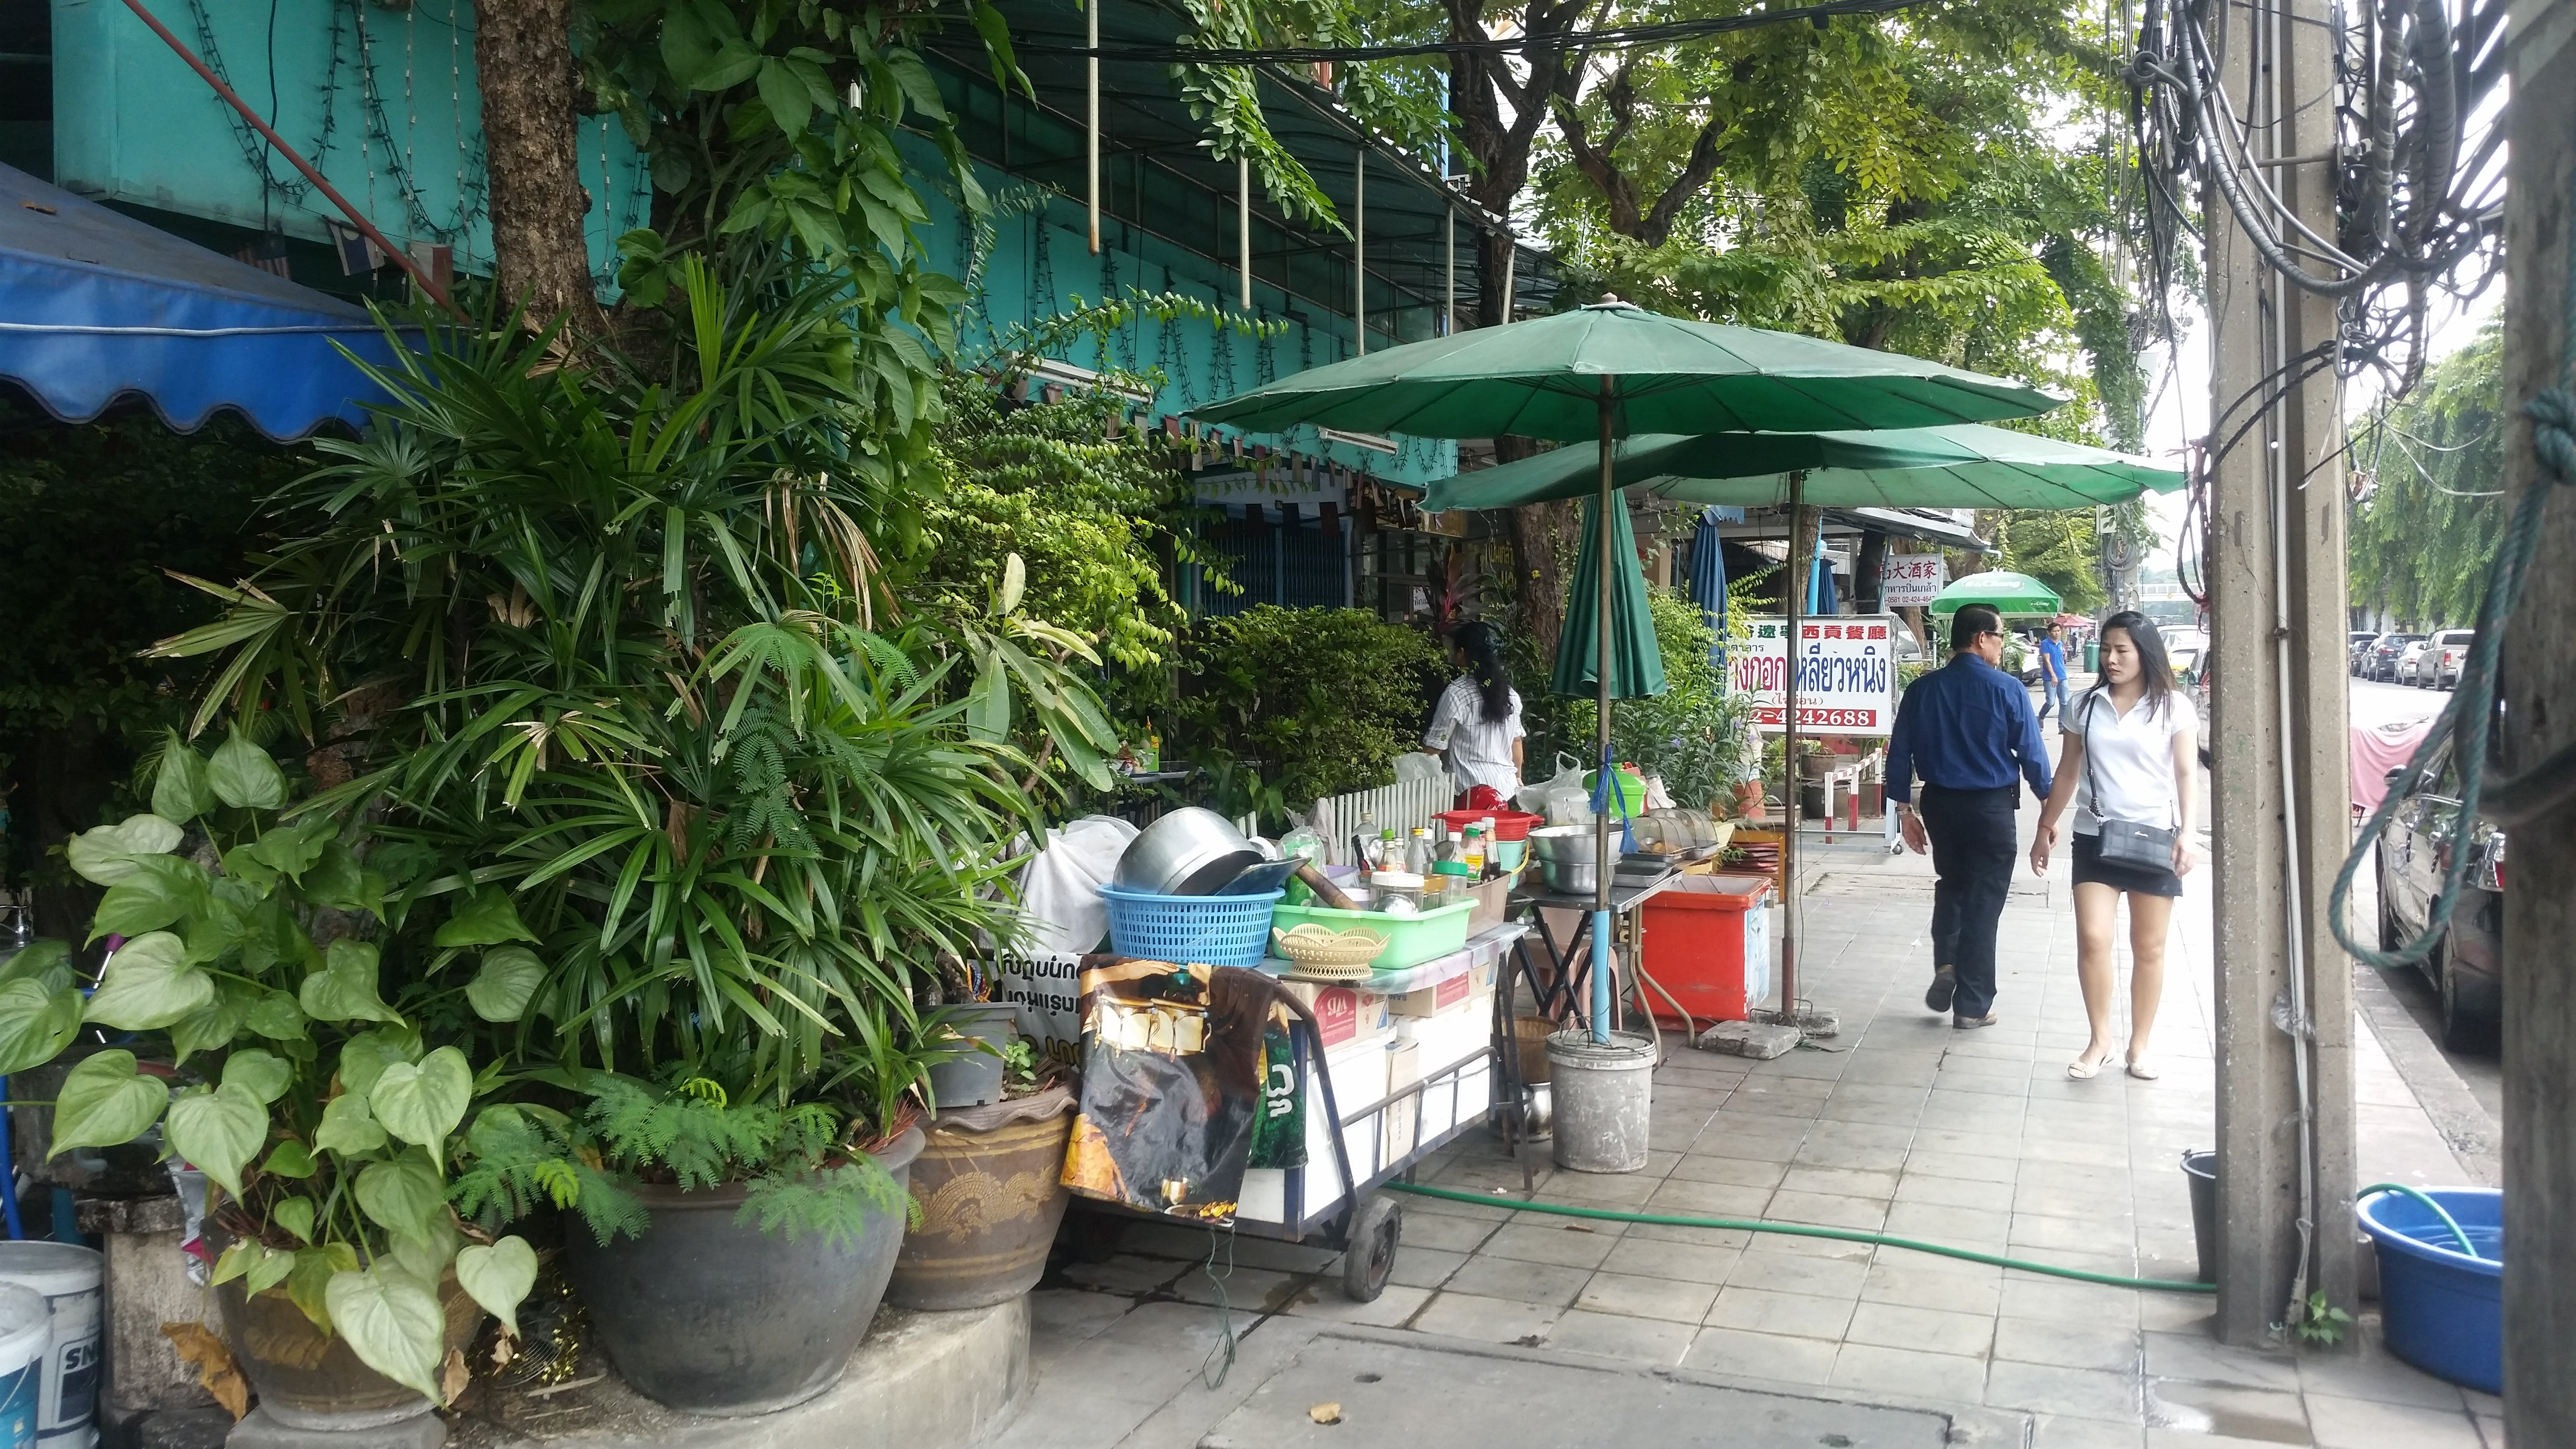 Street food carts, like this one, are on basically every street or corner, even the small ones.